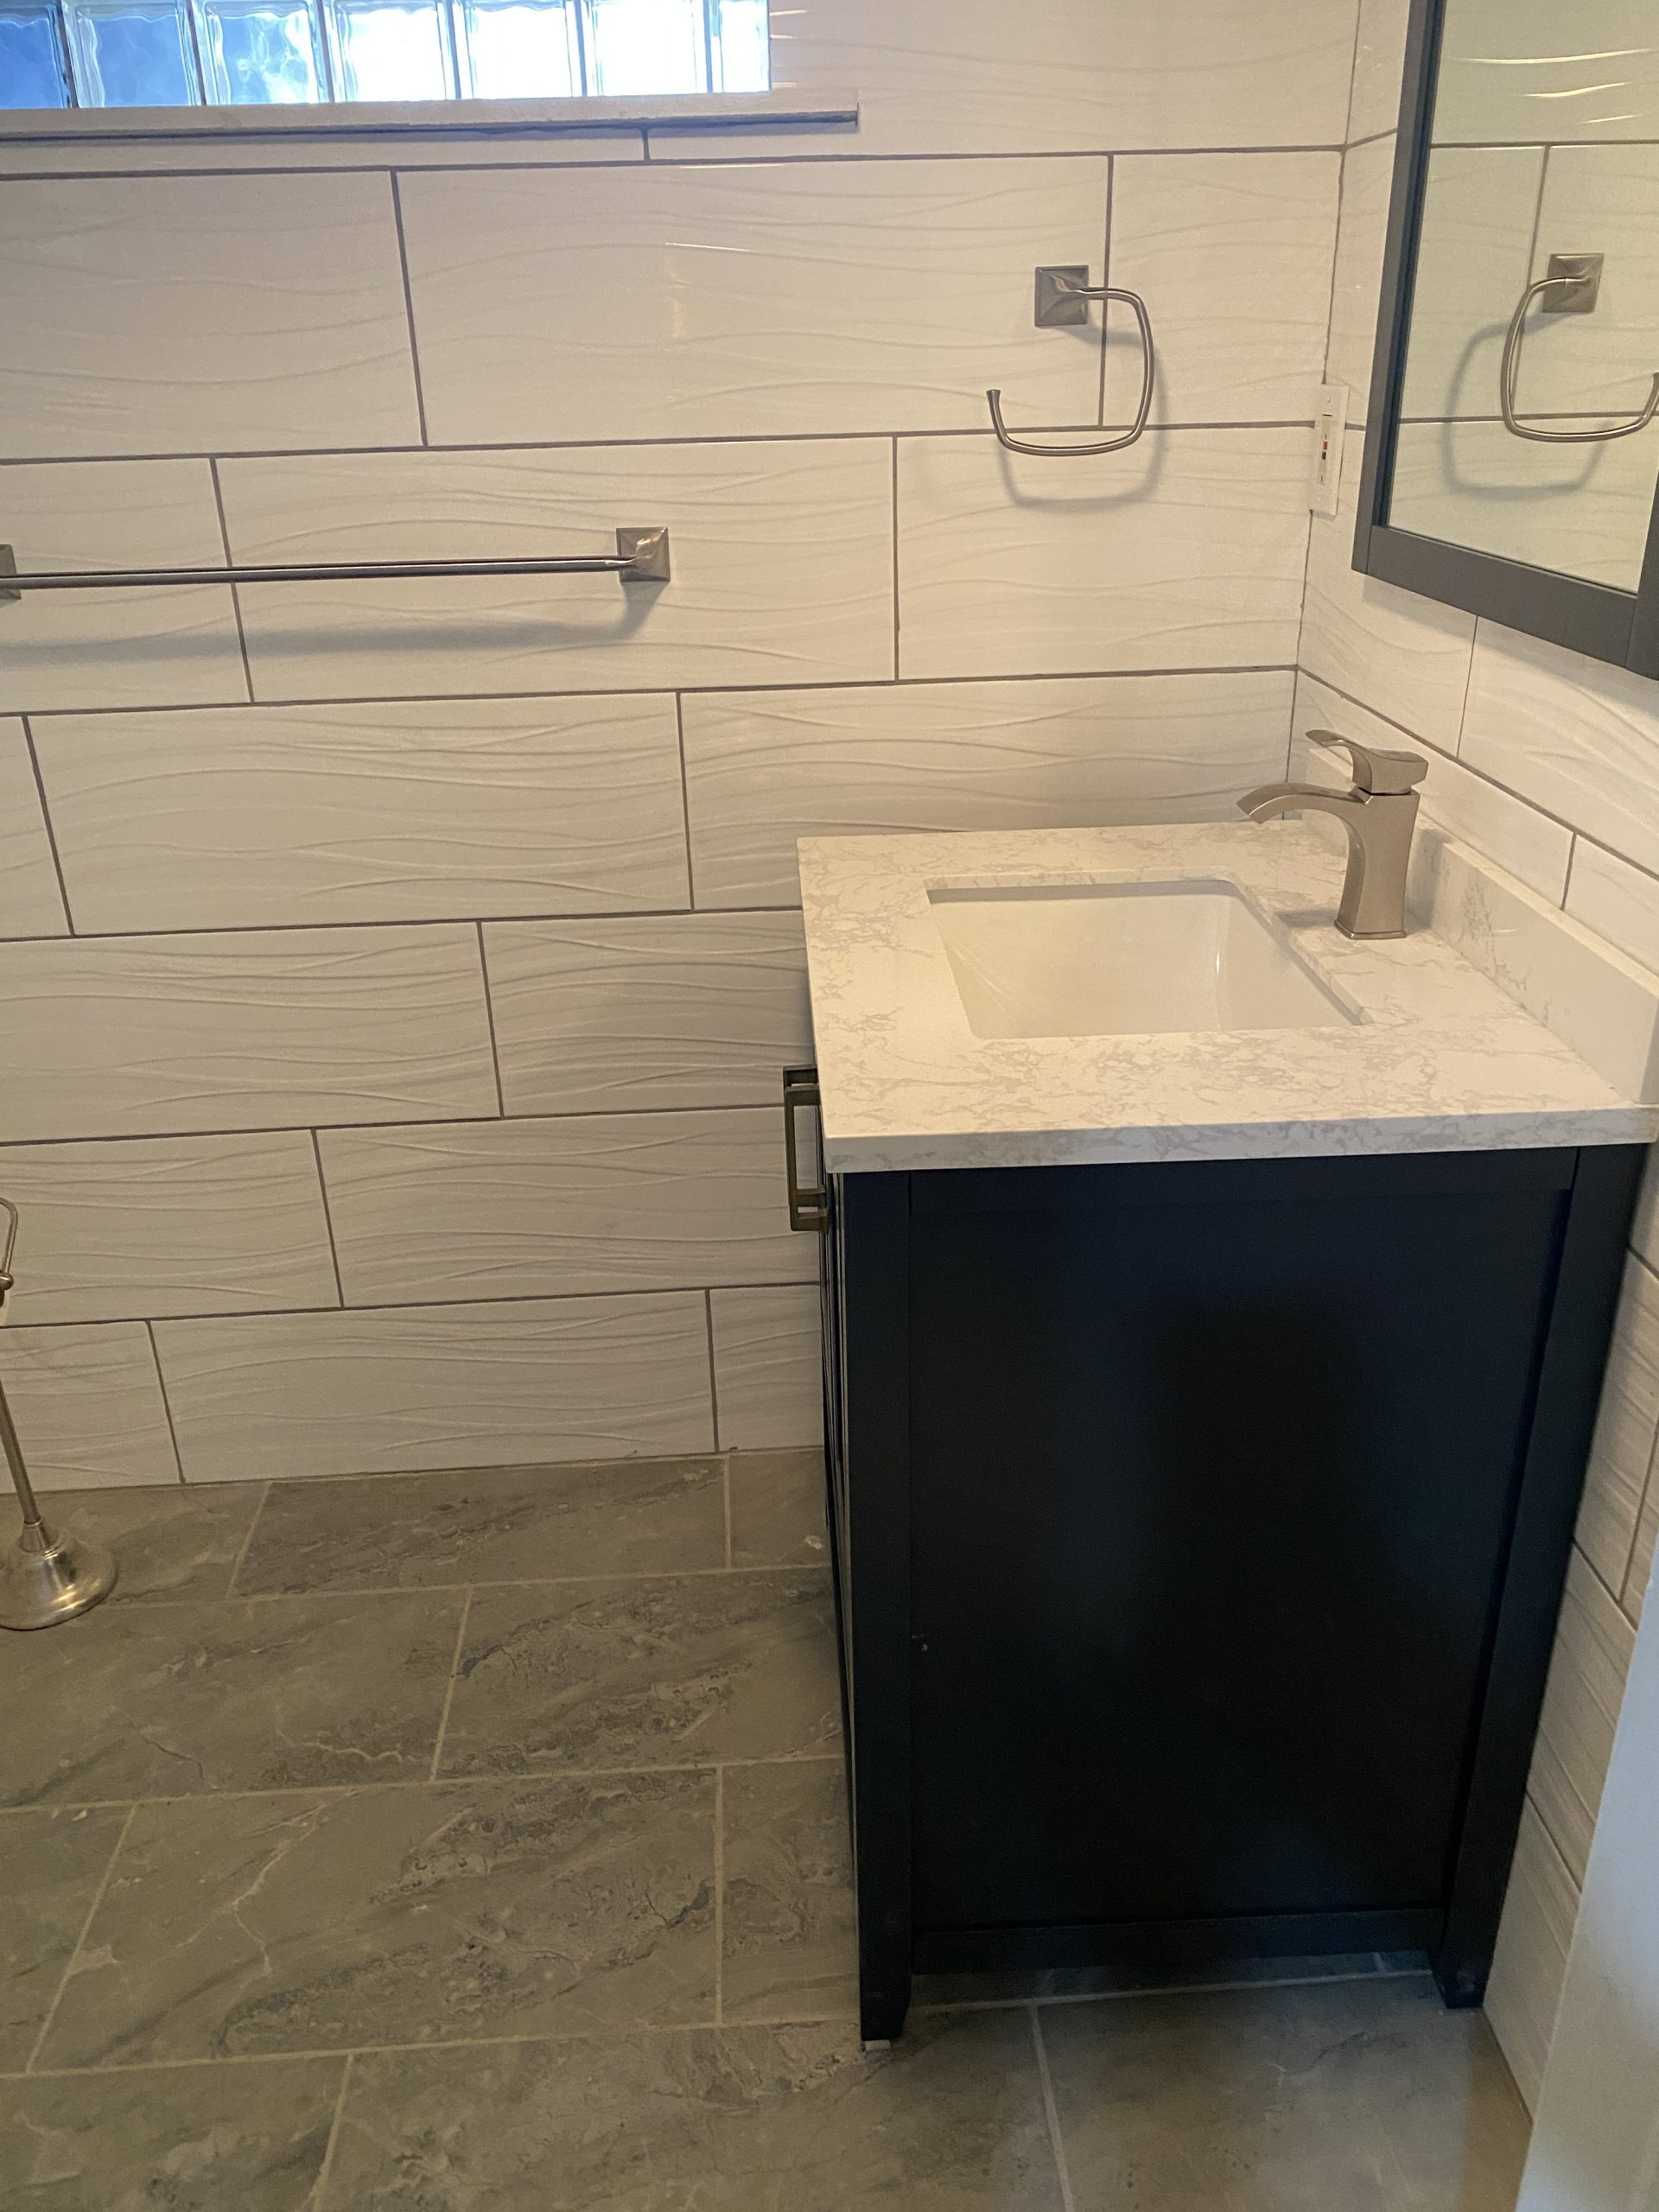 Should You Do Your Own Bathroom Remodeling in Glenside PA?